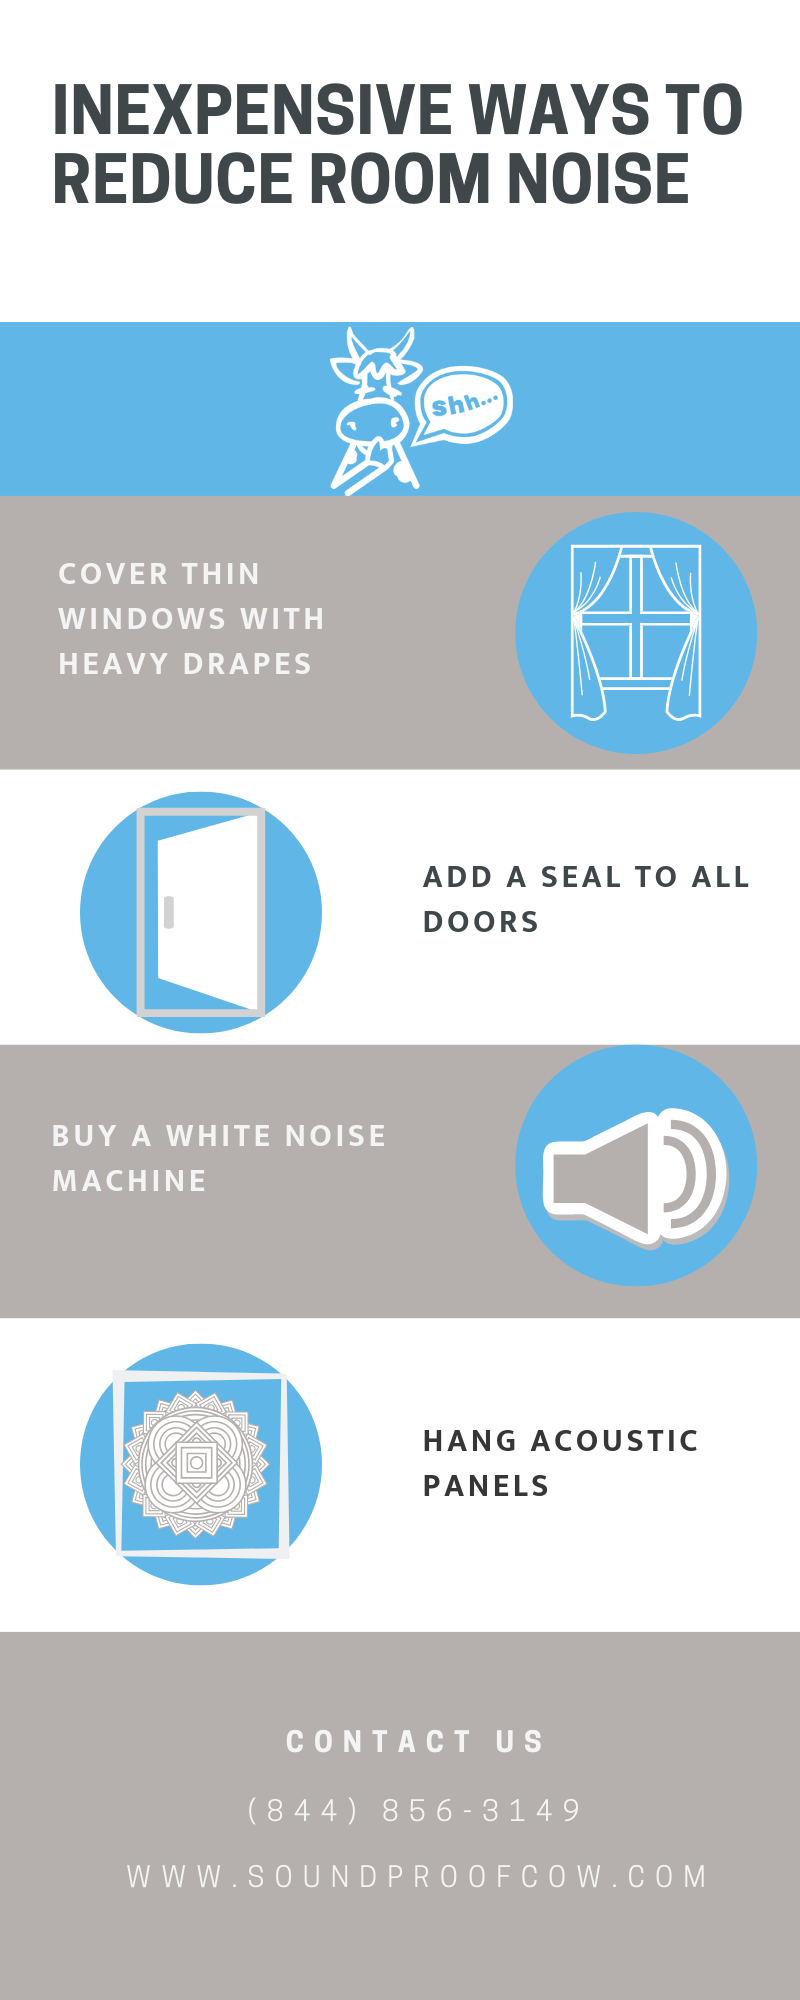 Inexpensive Ways to Reduce Room Noise